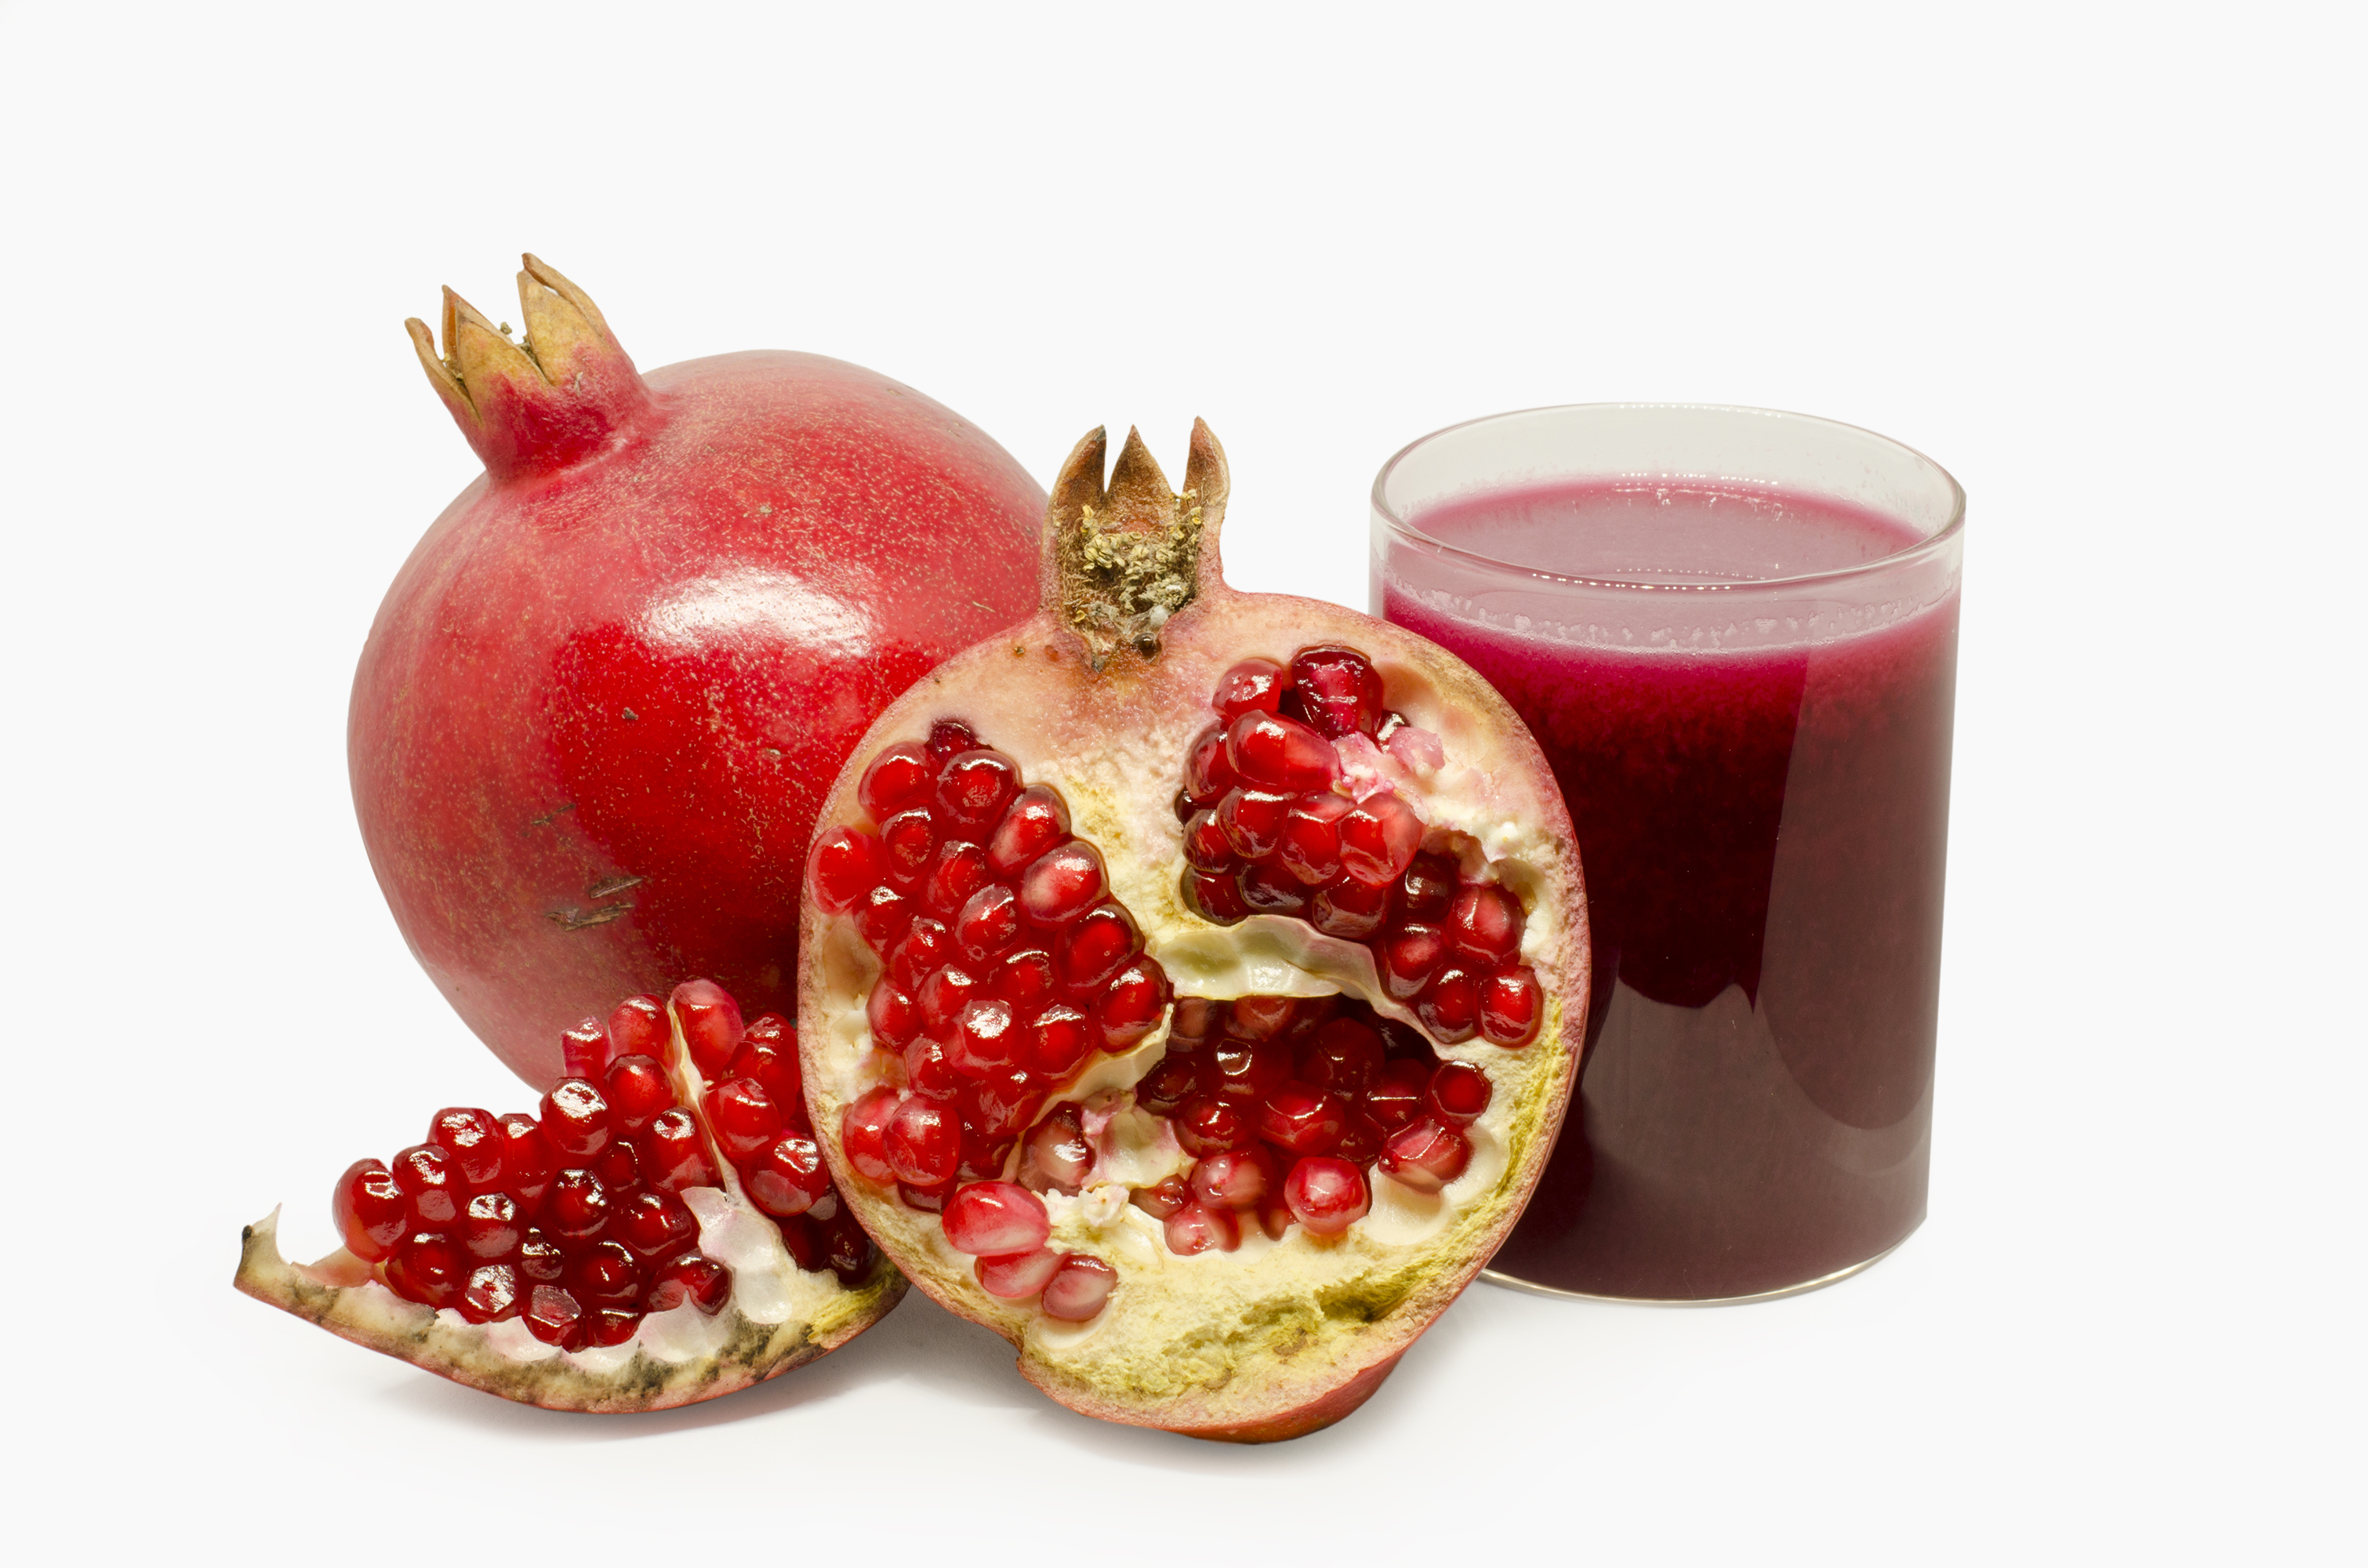 Pomegranate - Wikipedia